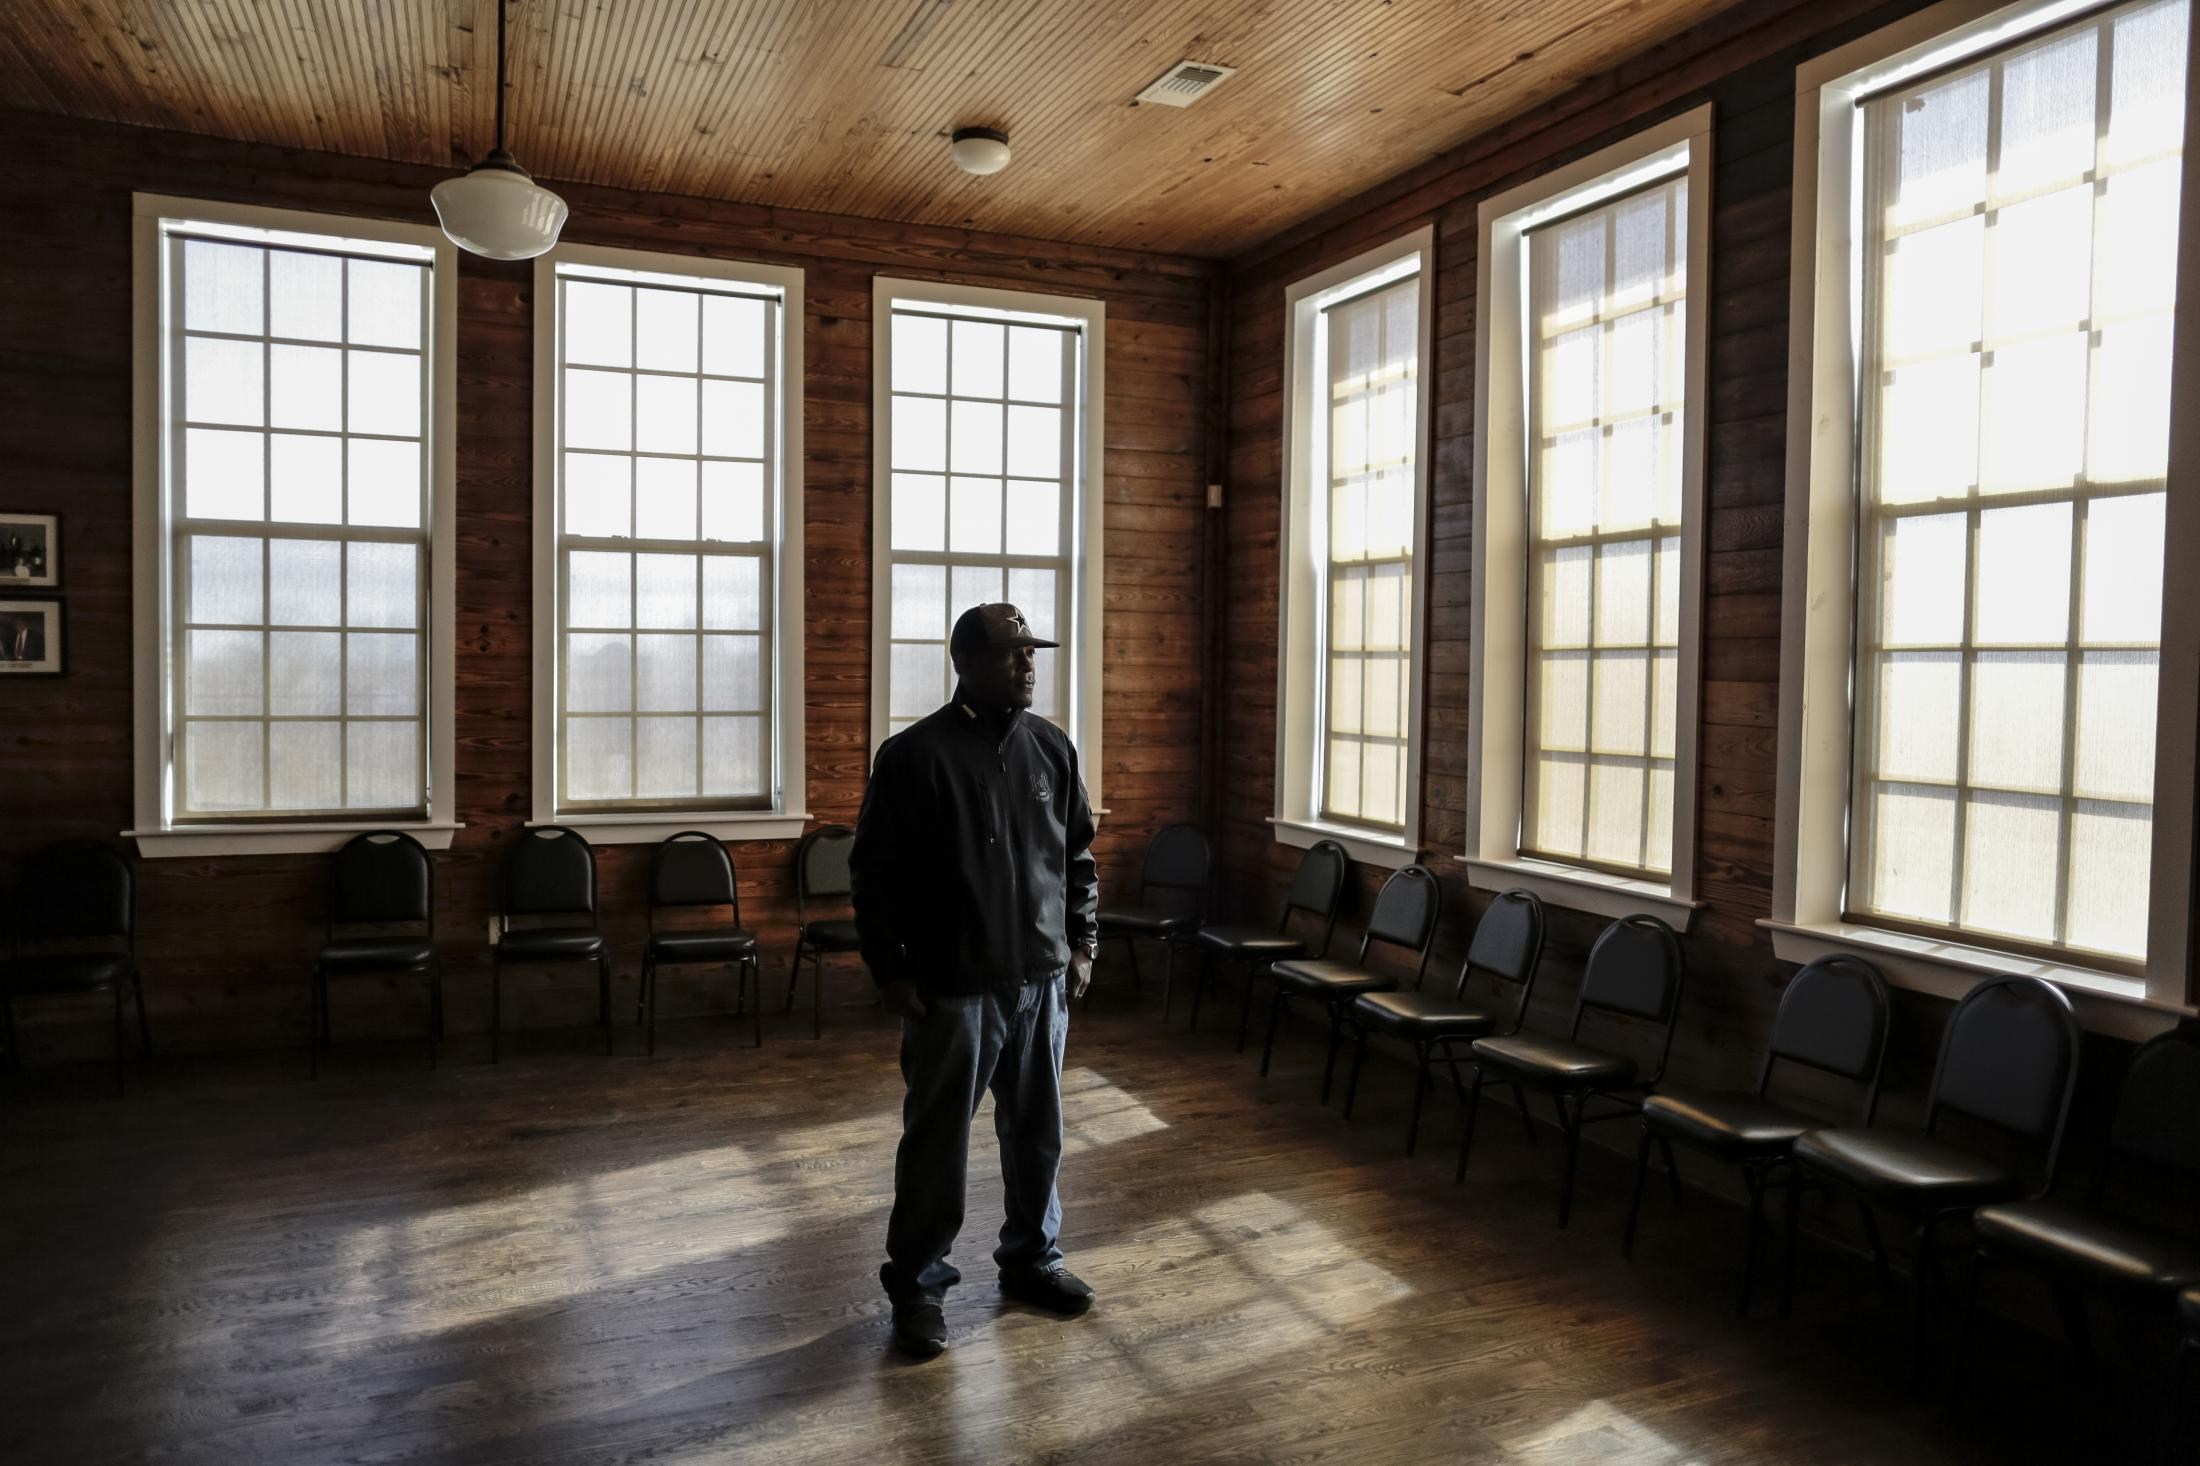 Tony Crawford stands in at the Mount Pleasant Colored School in Weatherford after a meeting with city officials about the Confederate Statue's future. The Colored School was built in 1907 for black children to get an education. Many of Tony's elders attended this school and spoke of the abuse and segregation in the city.